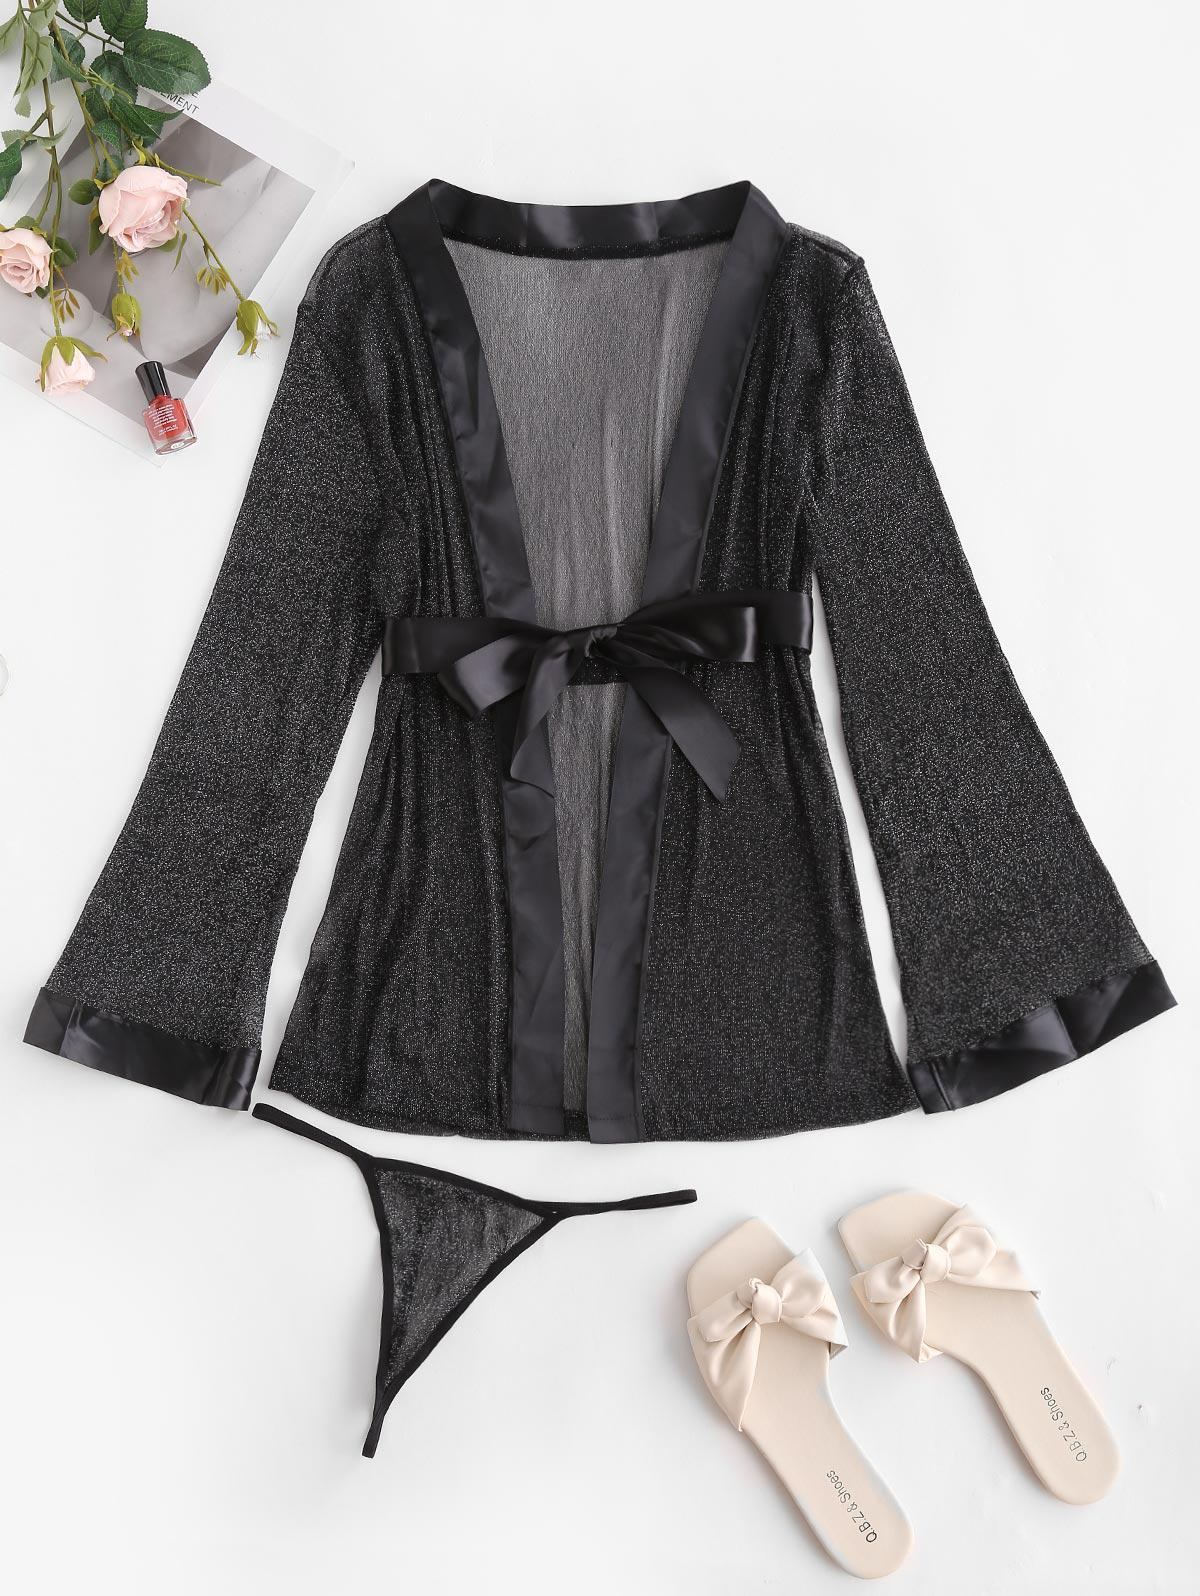 Sparkly Metallic Thread Lace See Thru Belted Robe